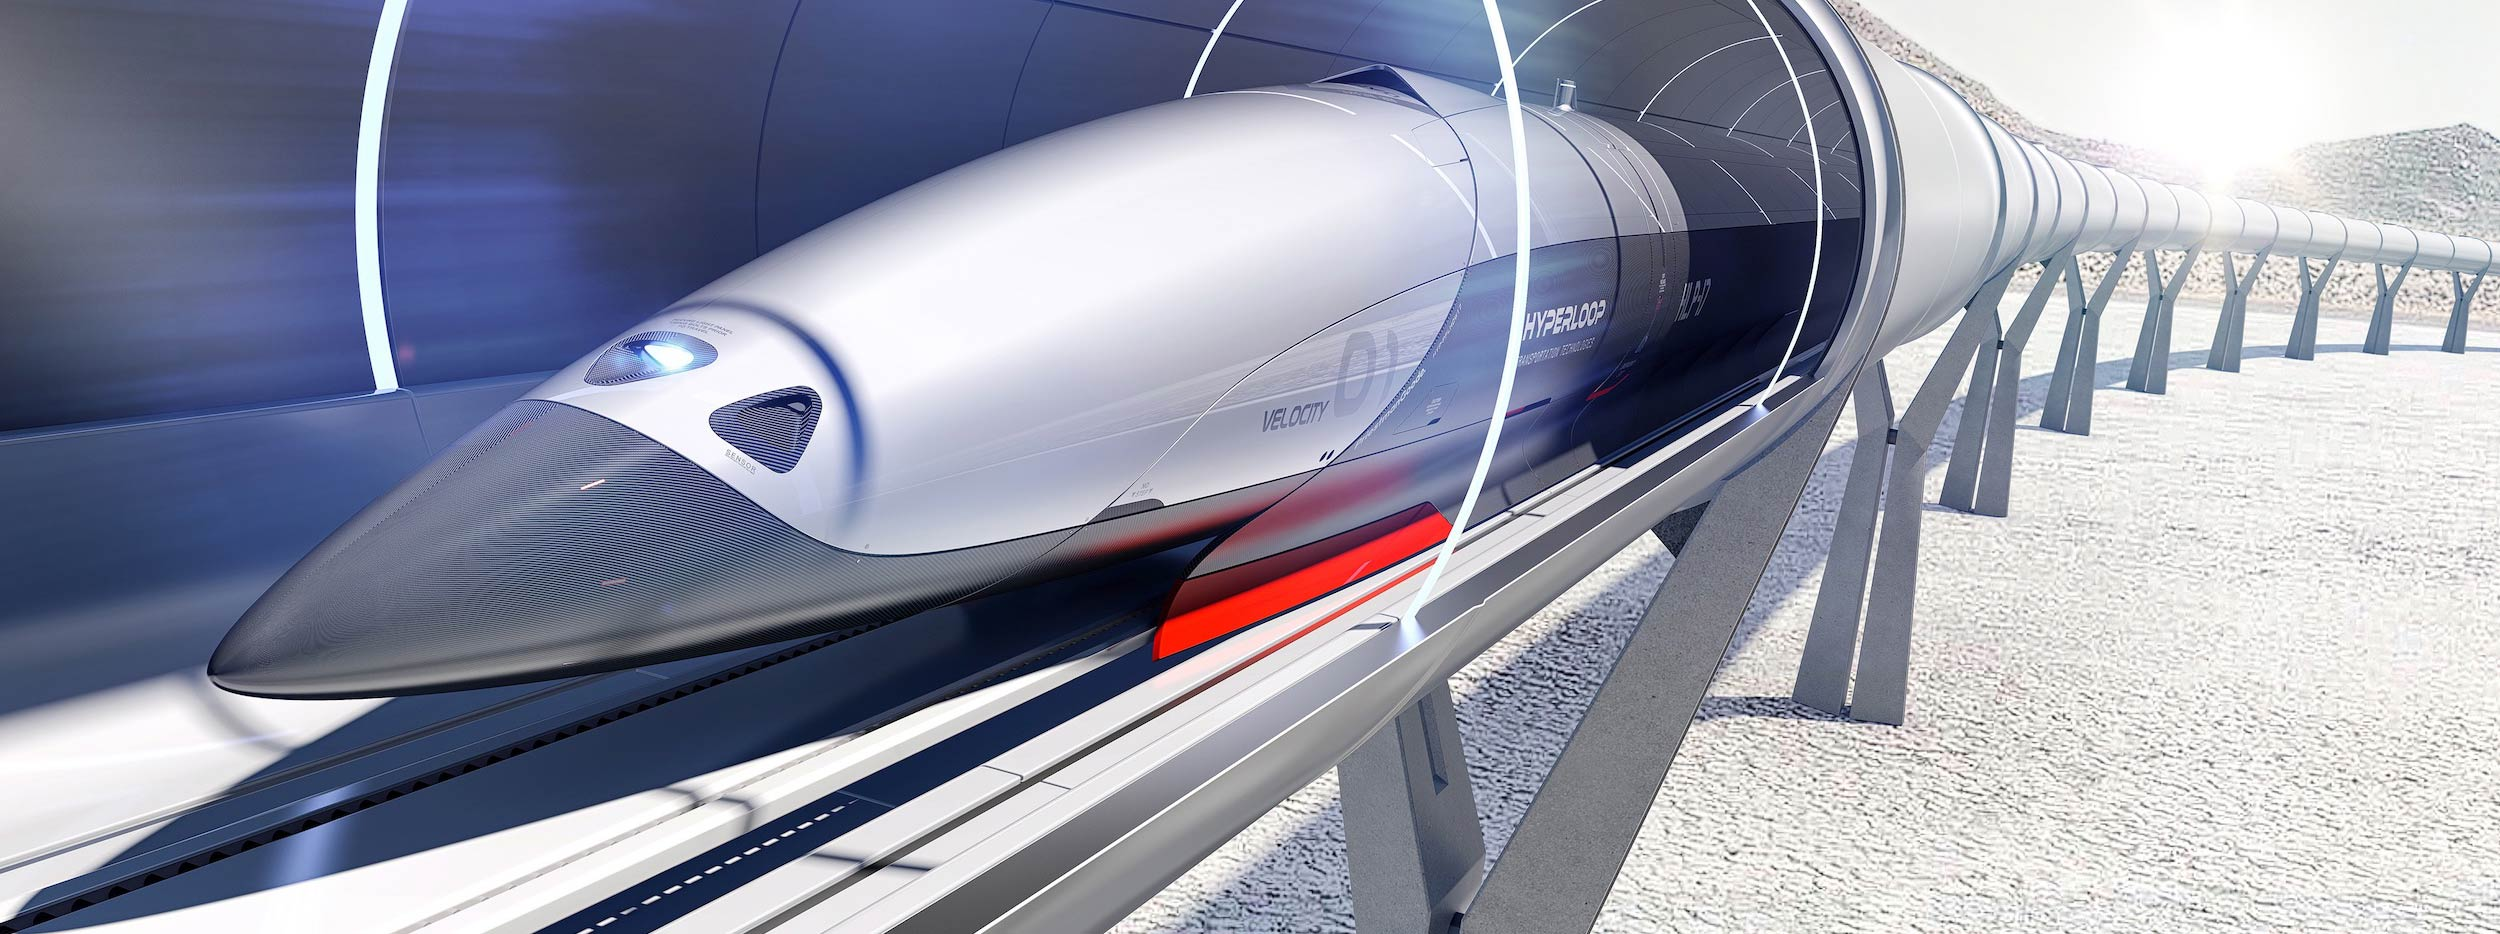 Hyperloop: Un Train à 1 000 km/h va être testé dans un Village du Limousin -